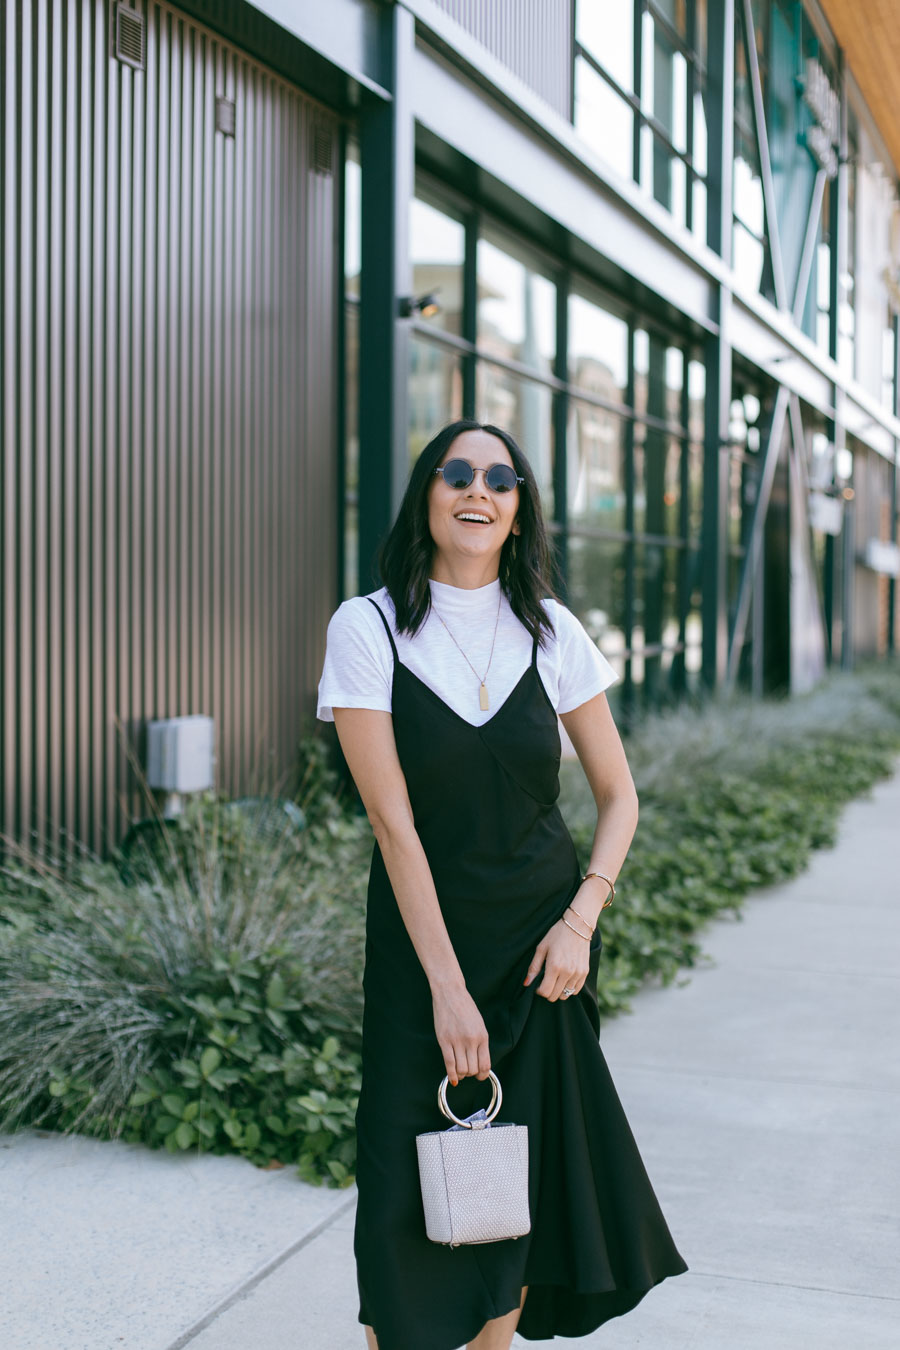 Lilly Beltran wearing a casual 90's inspired look with a black slip dress and white sneakers.